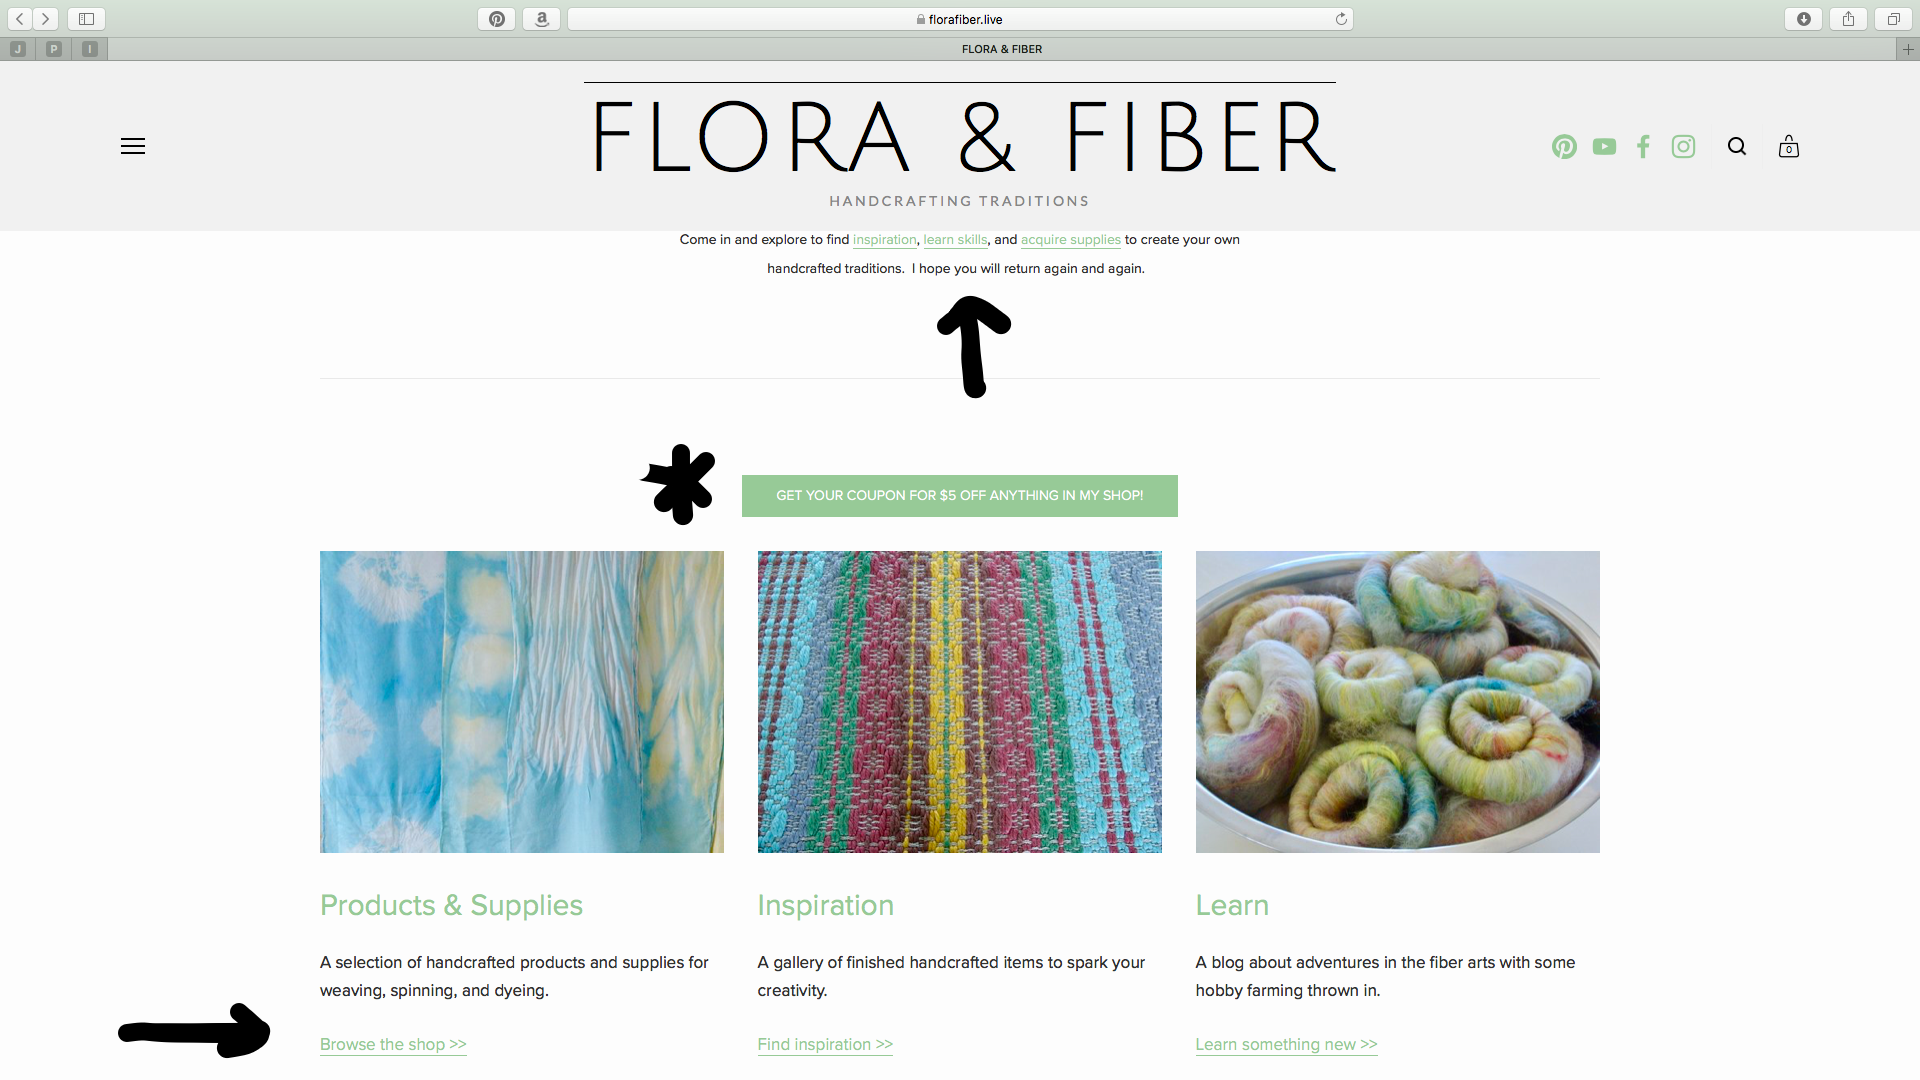 Flora & Fiber website welcome page